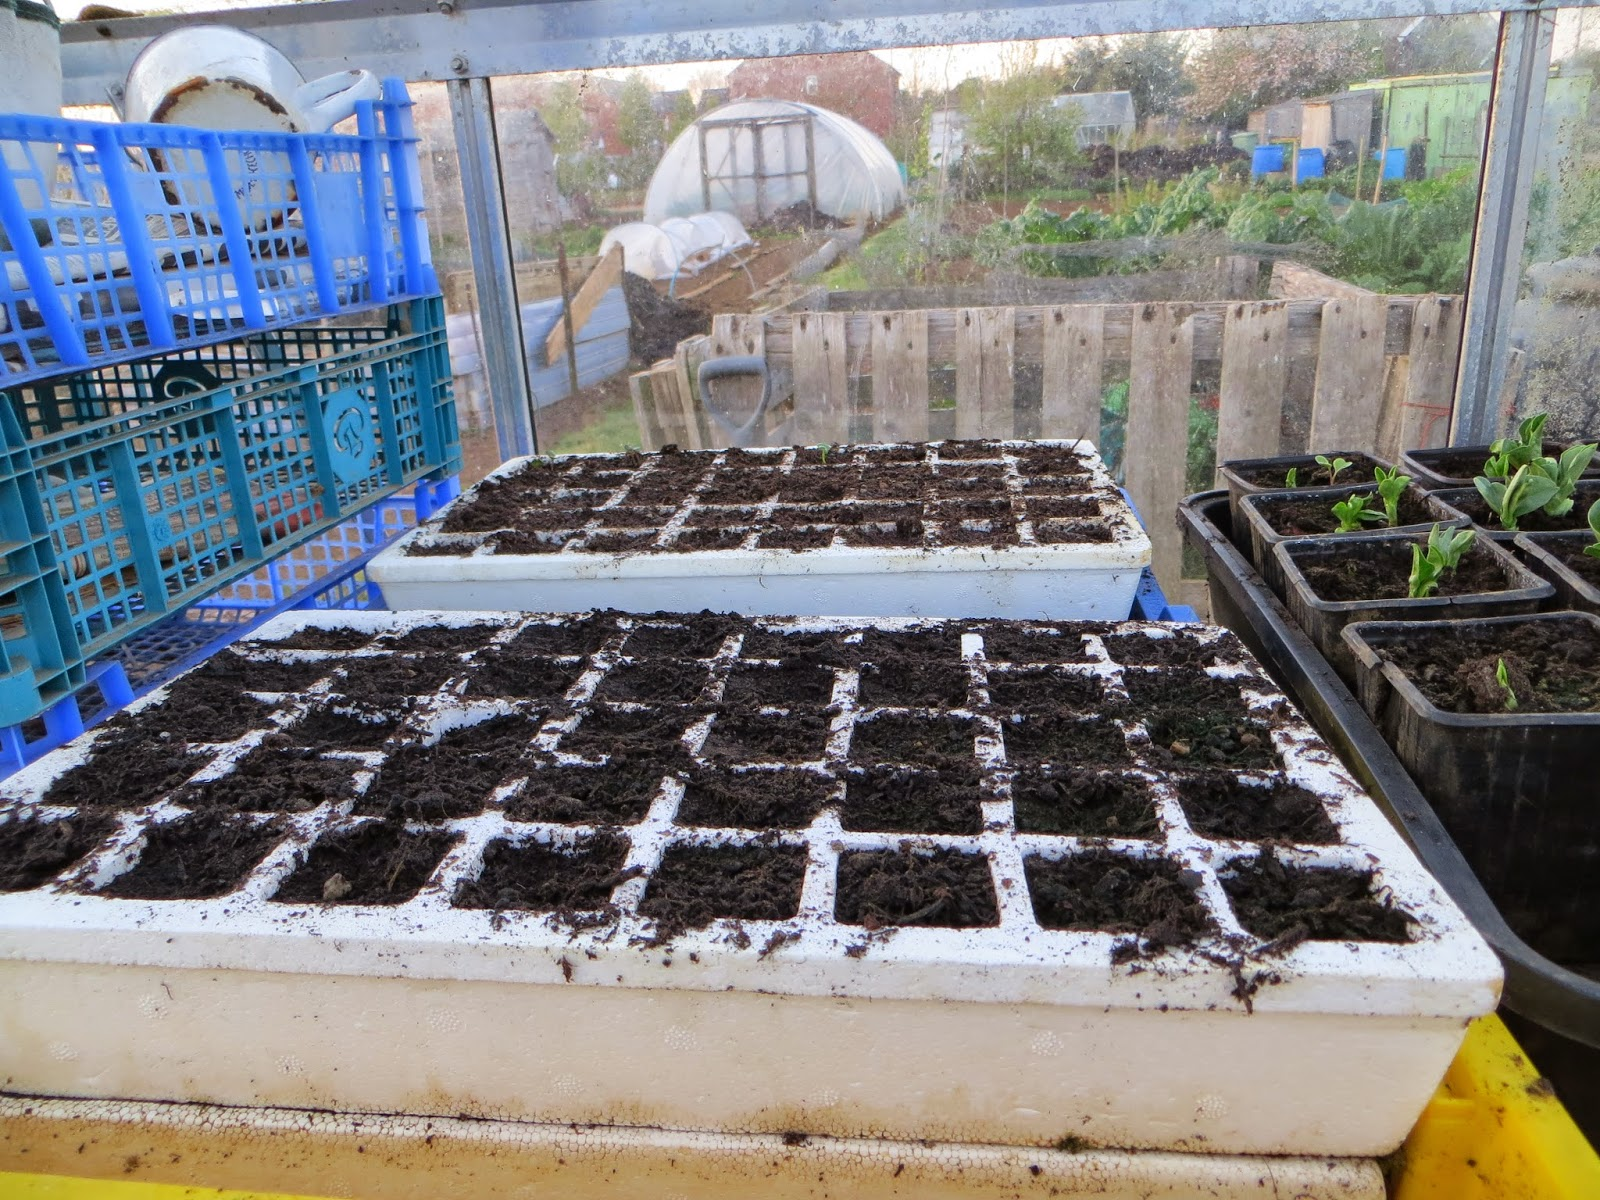 brassica self watering cells trays